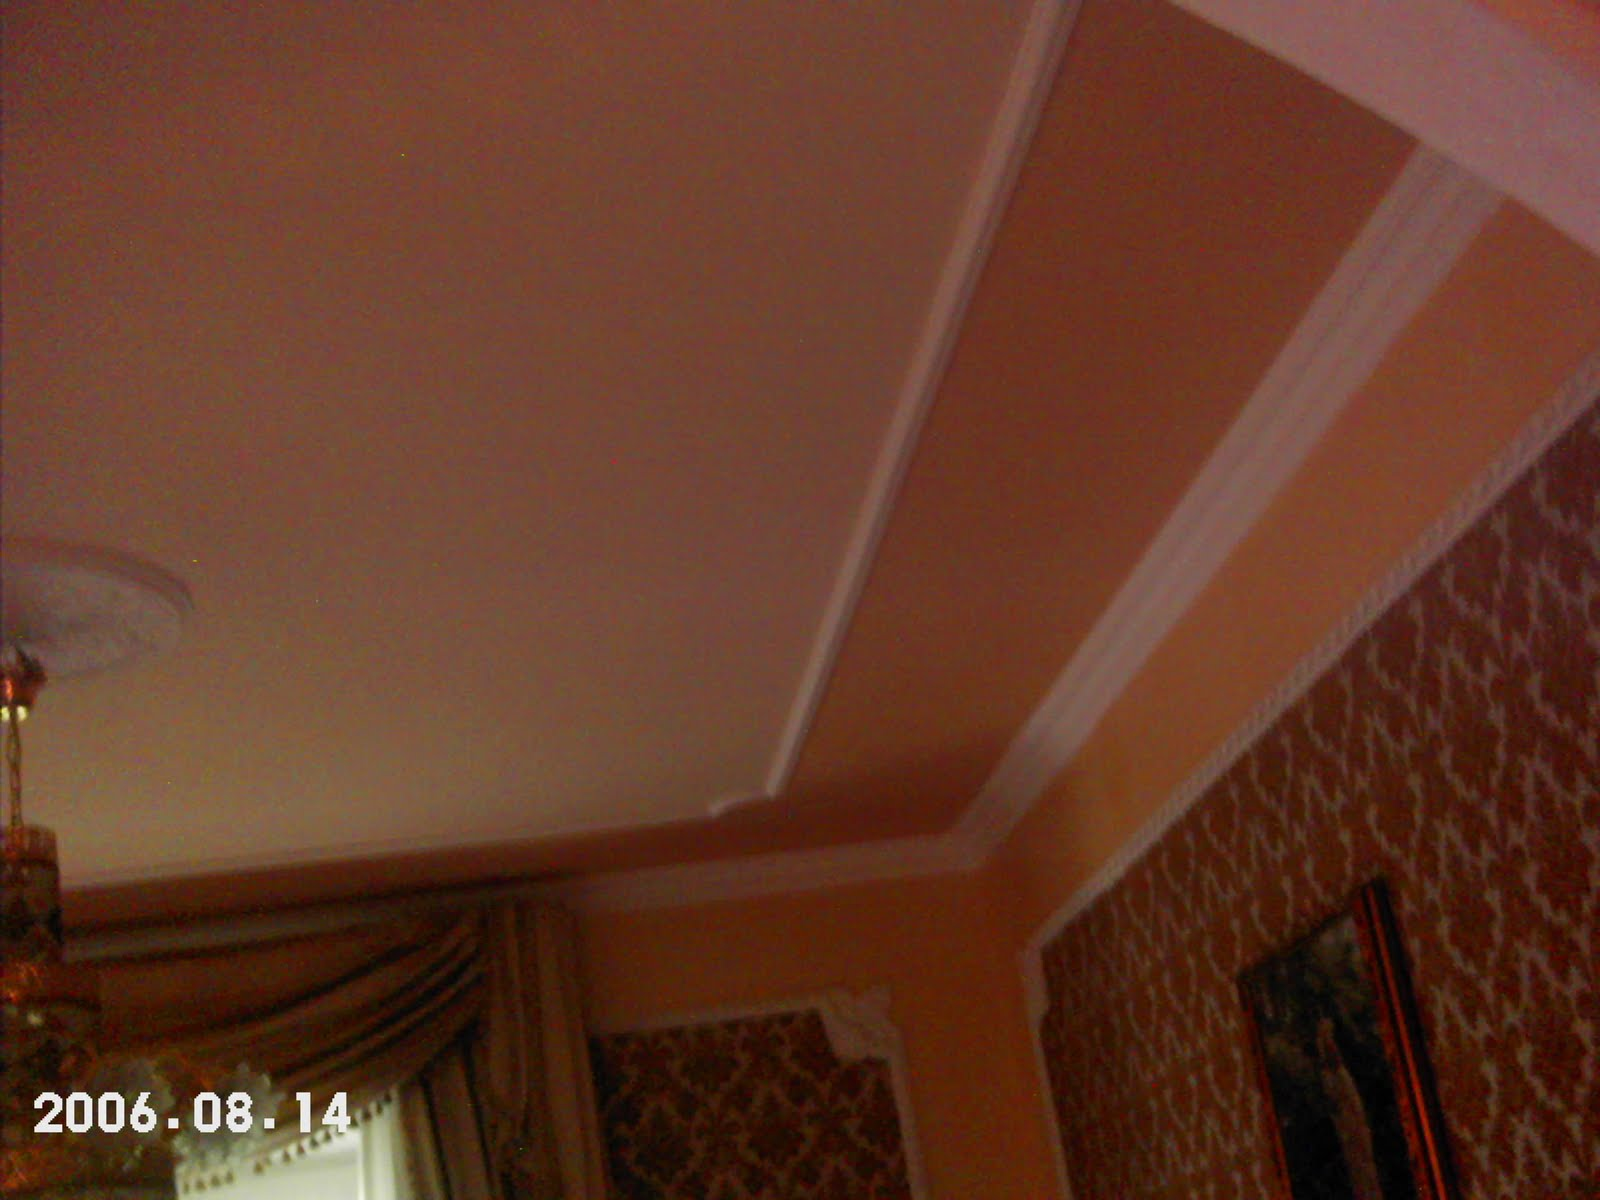 Decoratione cartone gesso